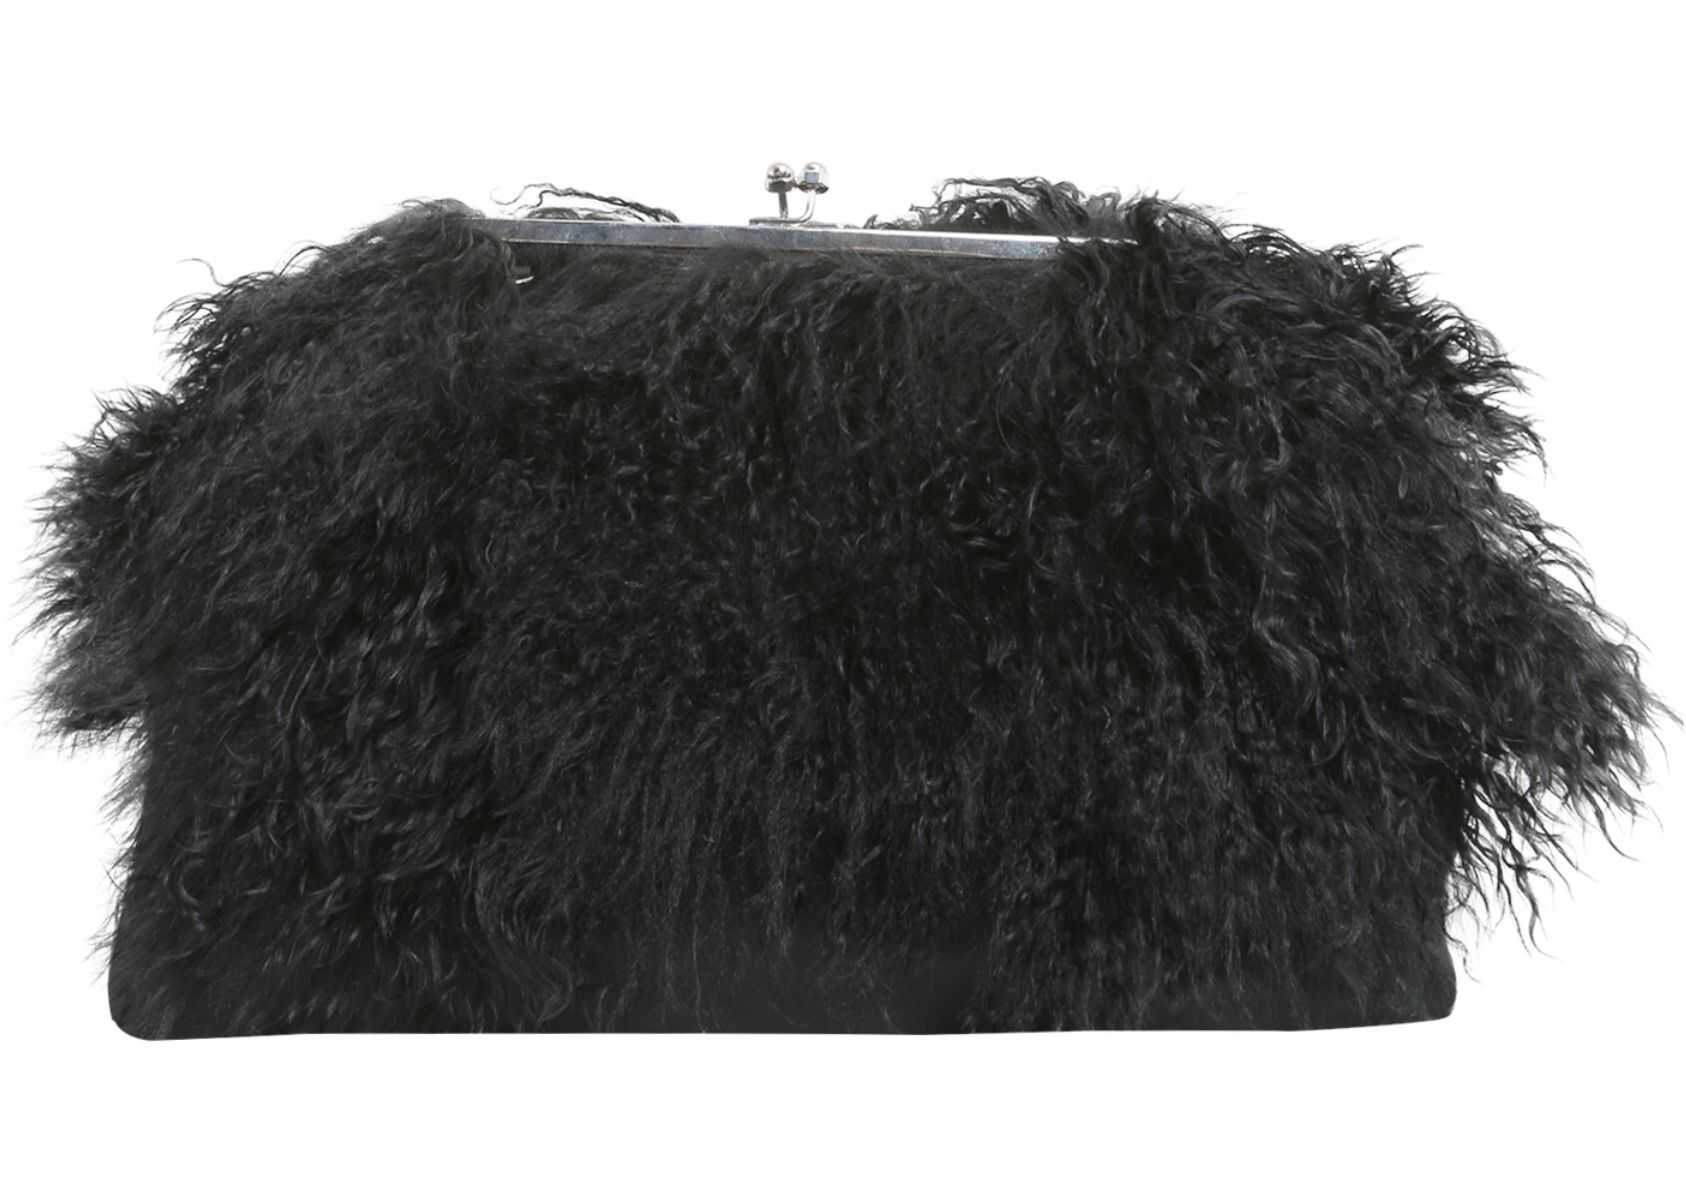 DSQUARED2 Clutch With Mongolian Fur Inserts W17CL2093_1546.2124 BLACK image0